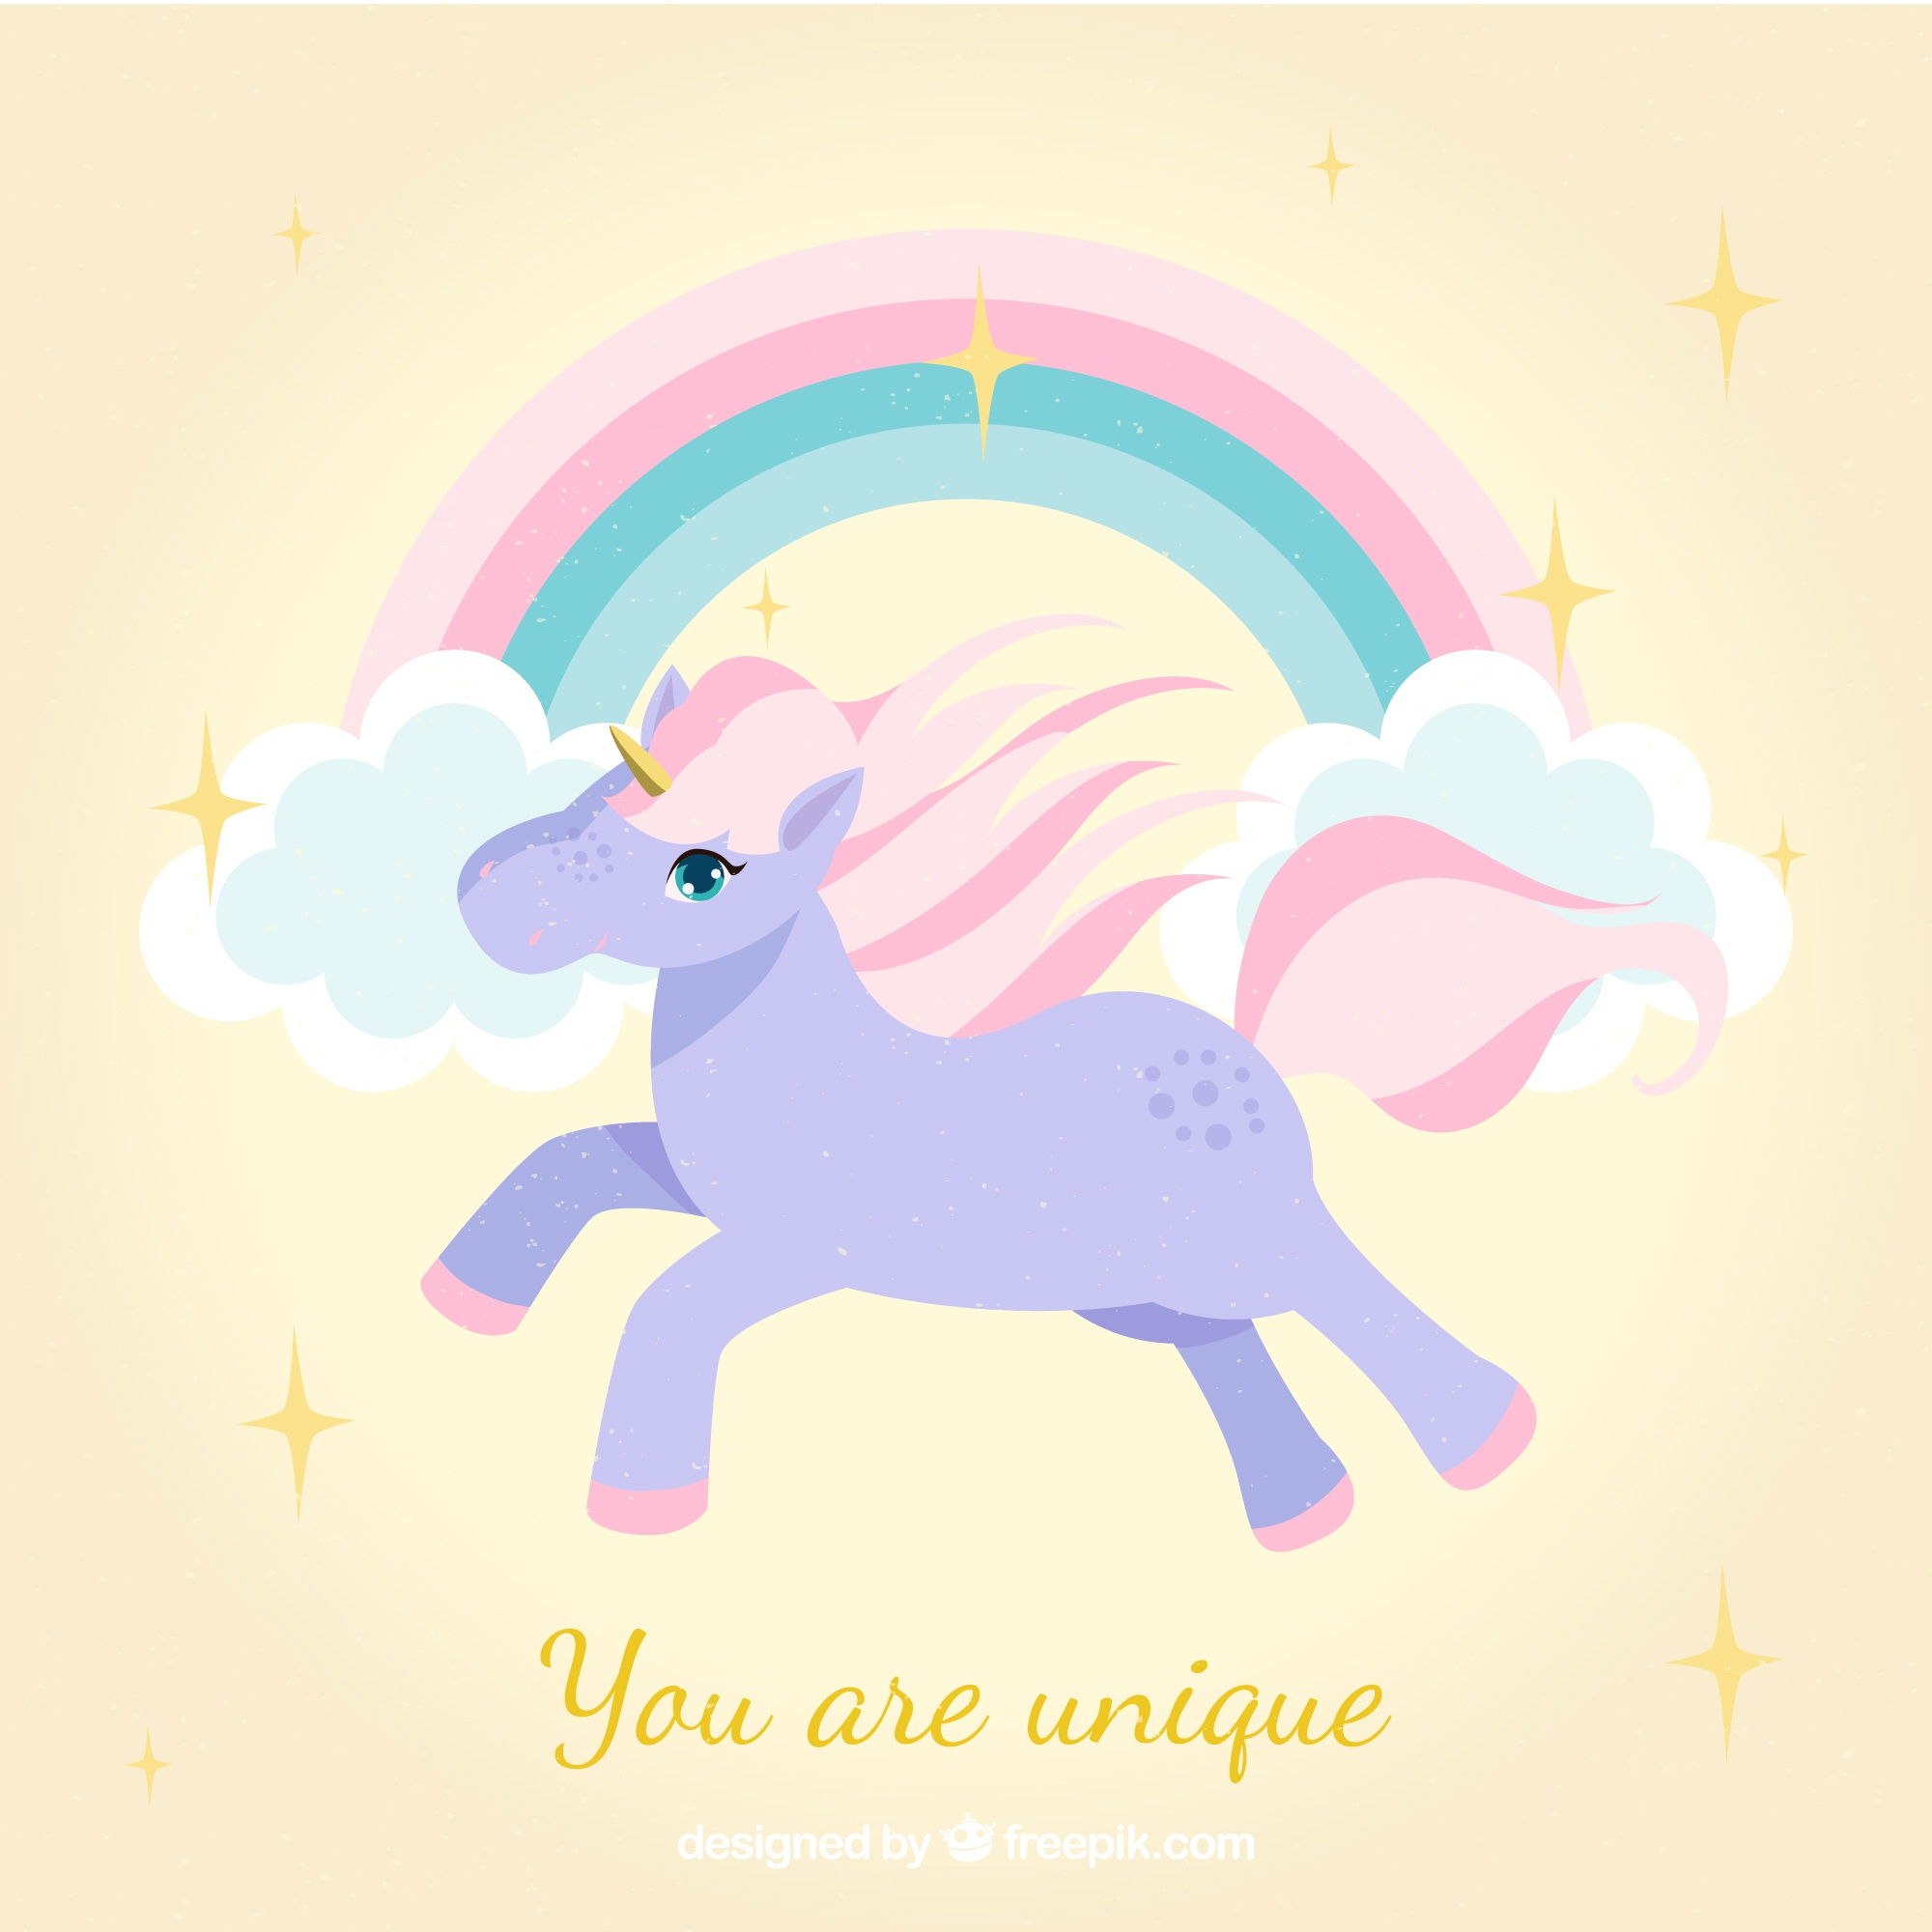 Unicorn background with rainbows and clouds